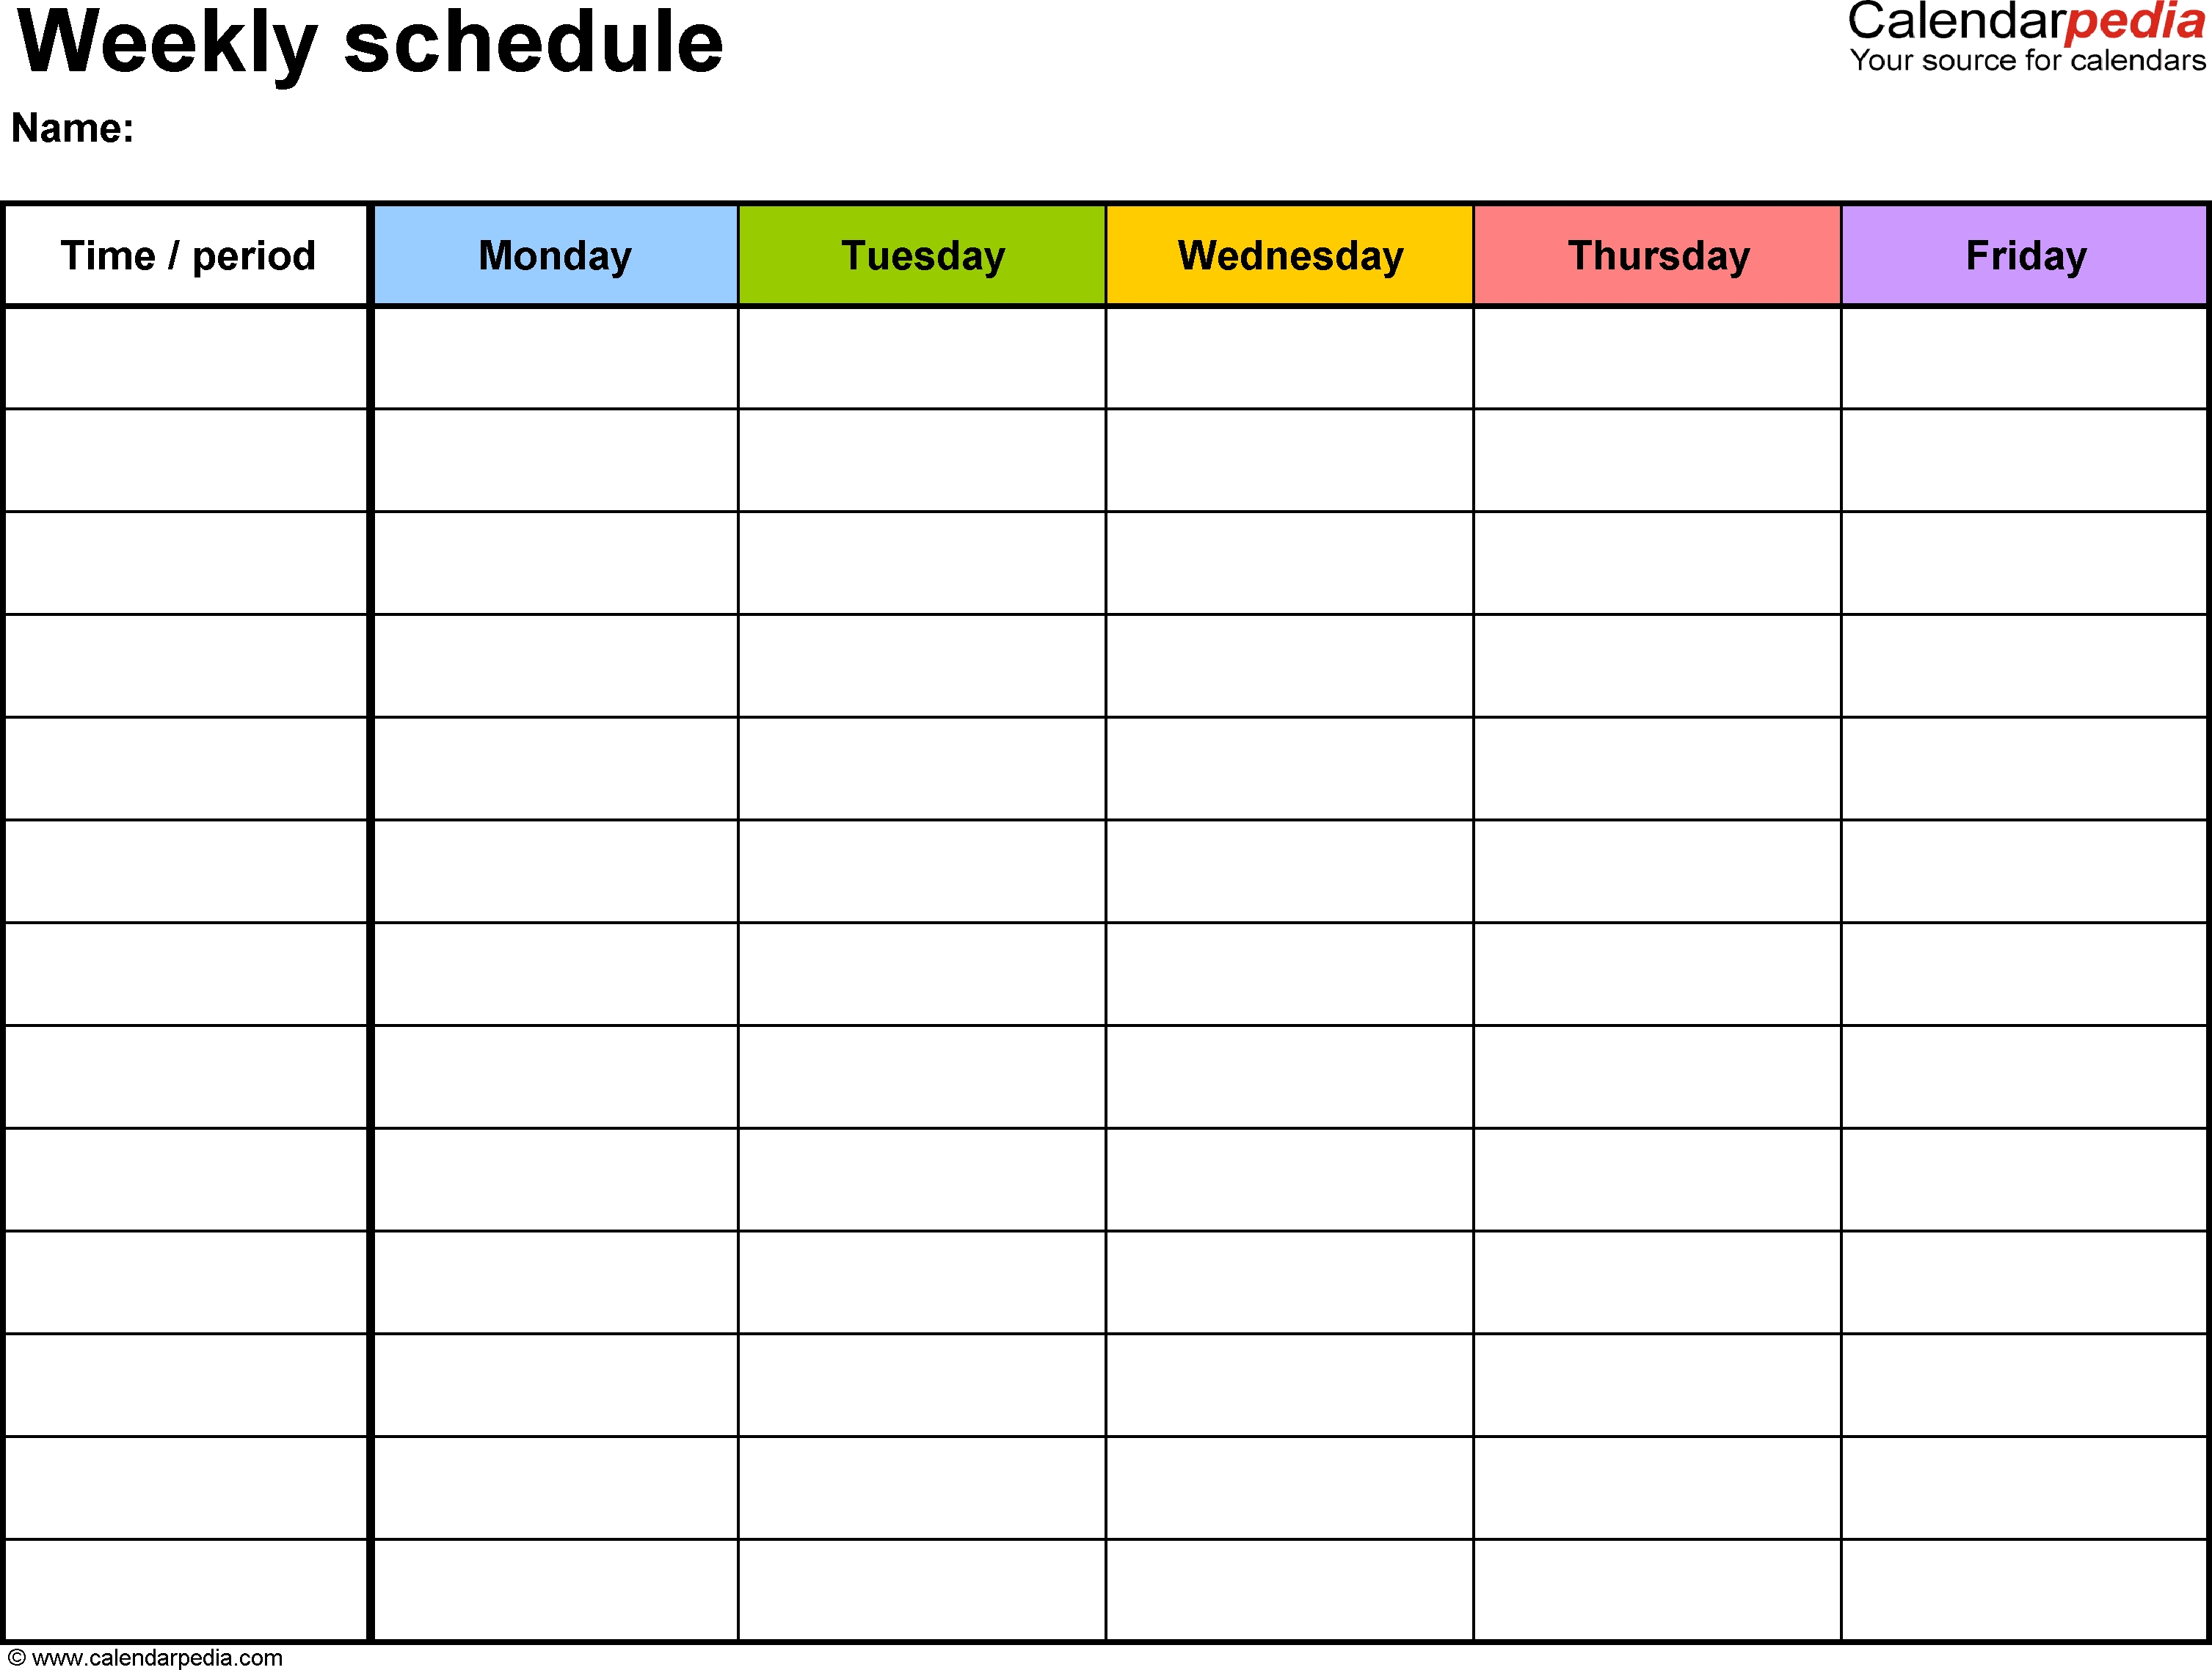 Free Weekly Schedule Templates For Word - 18 Templates in 5 Day Weekly Planner Template